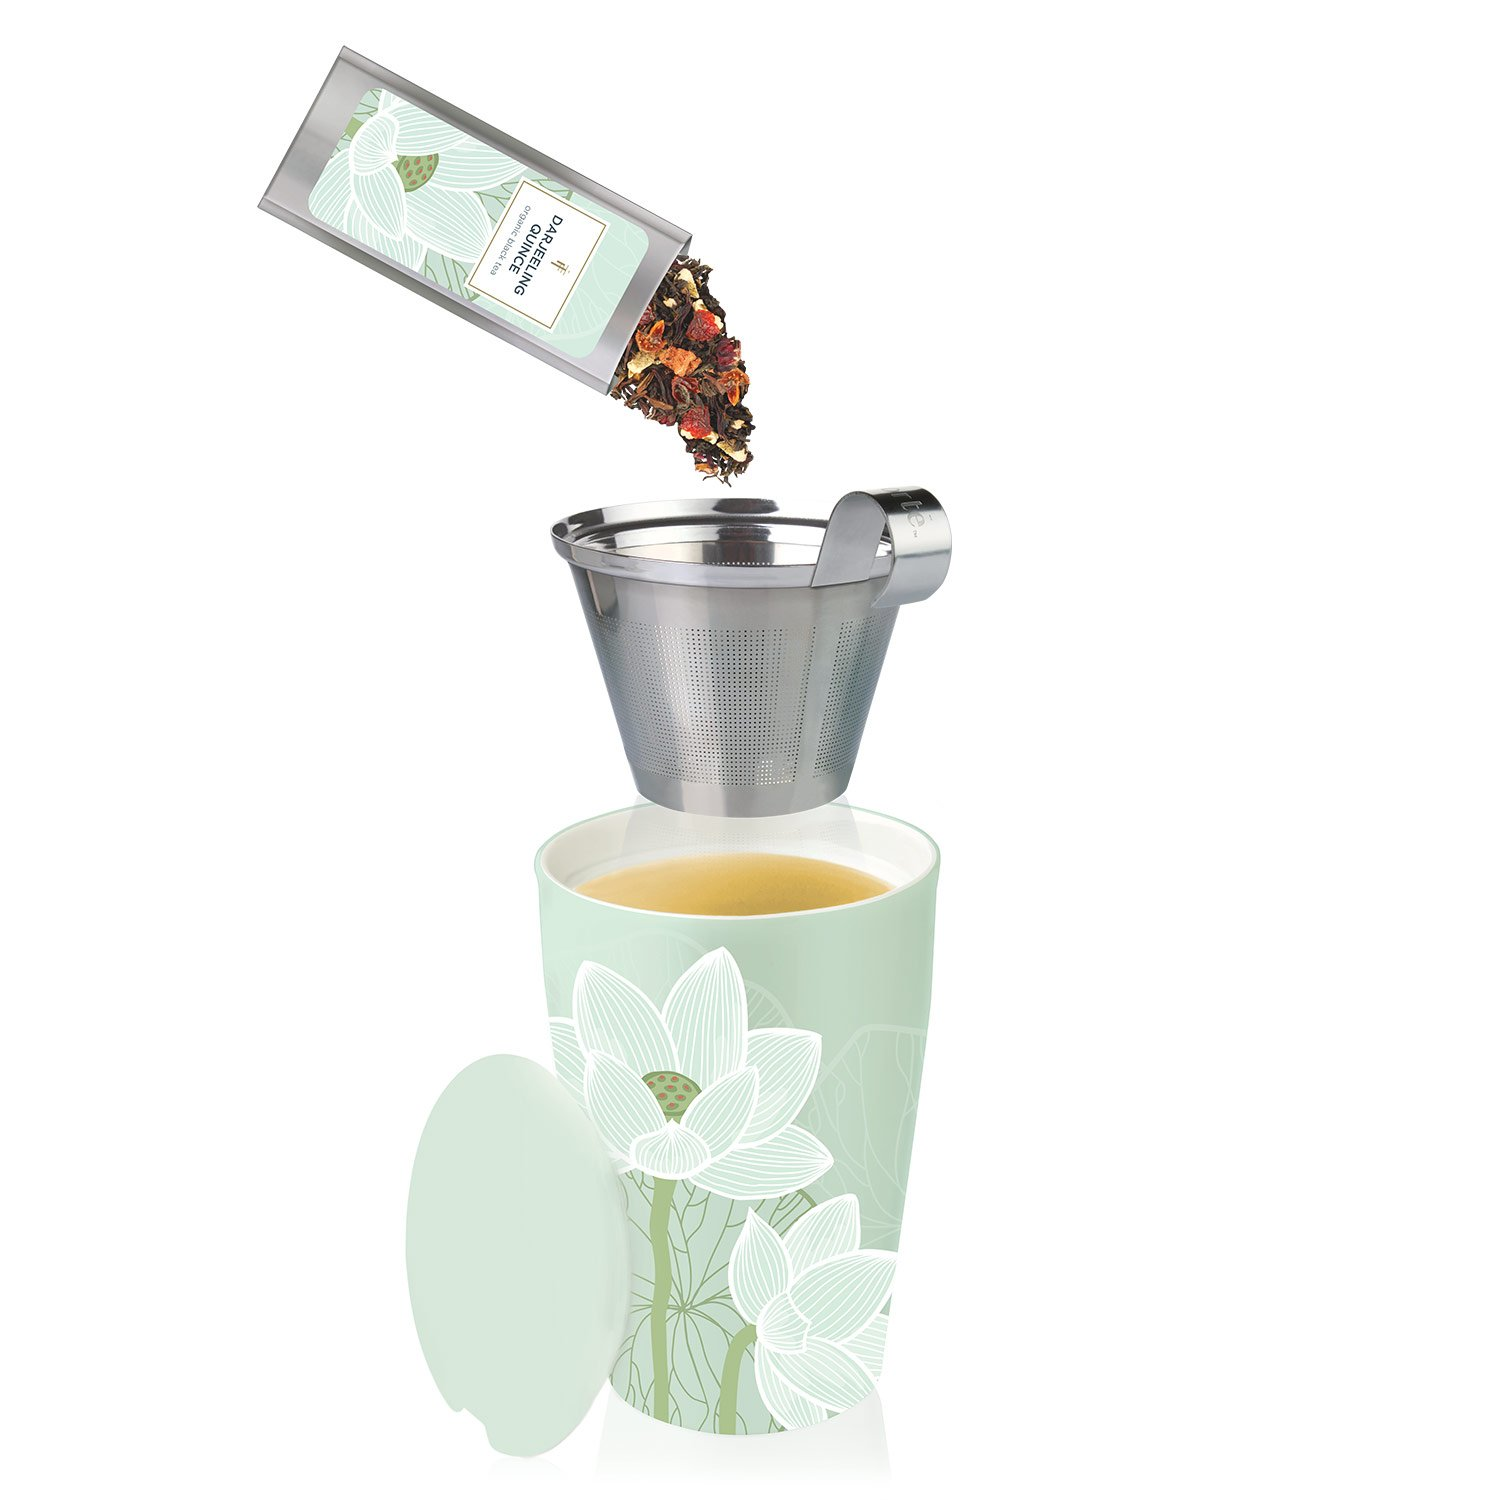 Tea Forté KATI Cup Ceramic Tea Brewing Cup with Infuser Basket and Lid for Steeping, Loose Leaf Tea Maker, Lotus